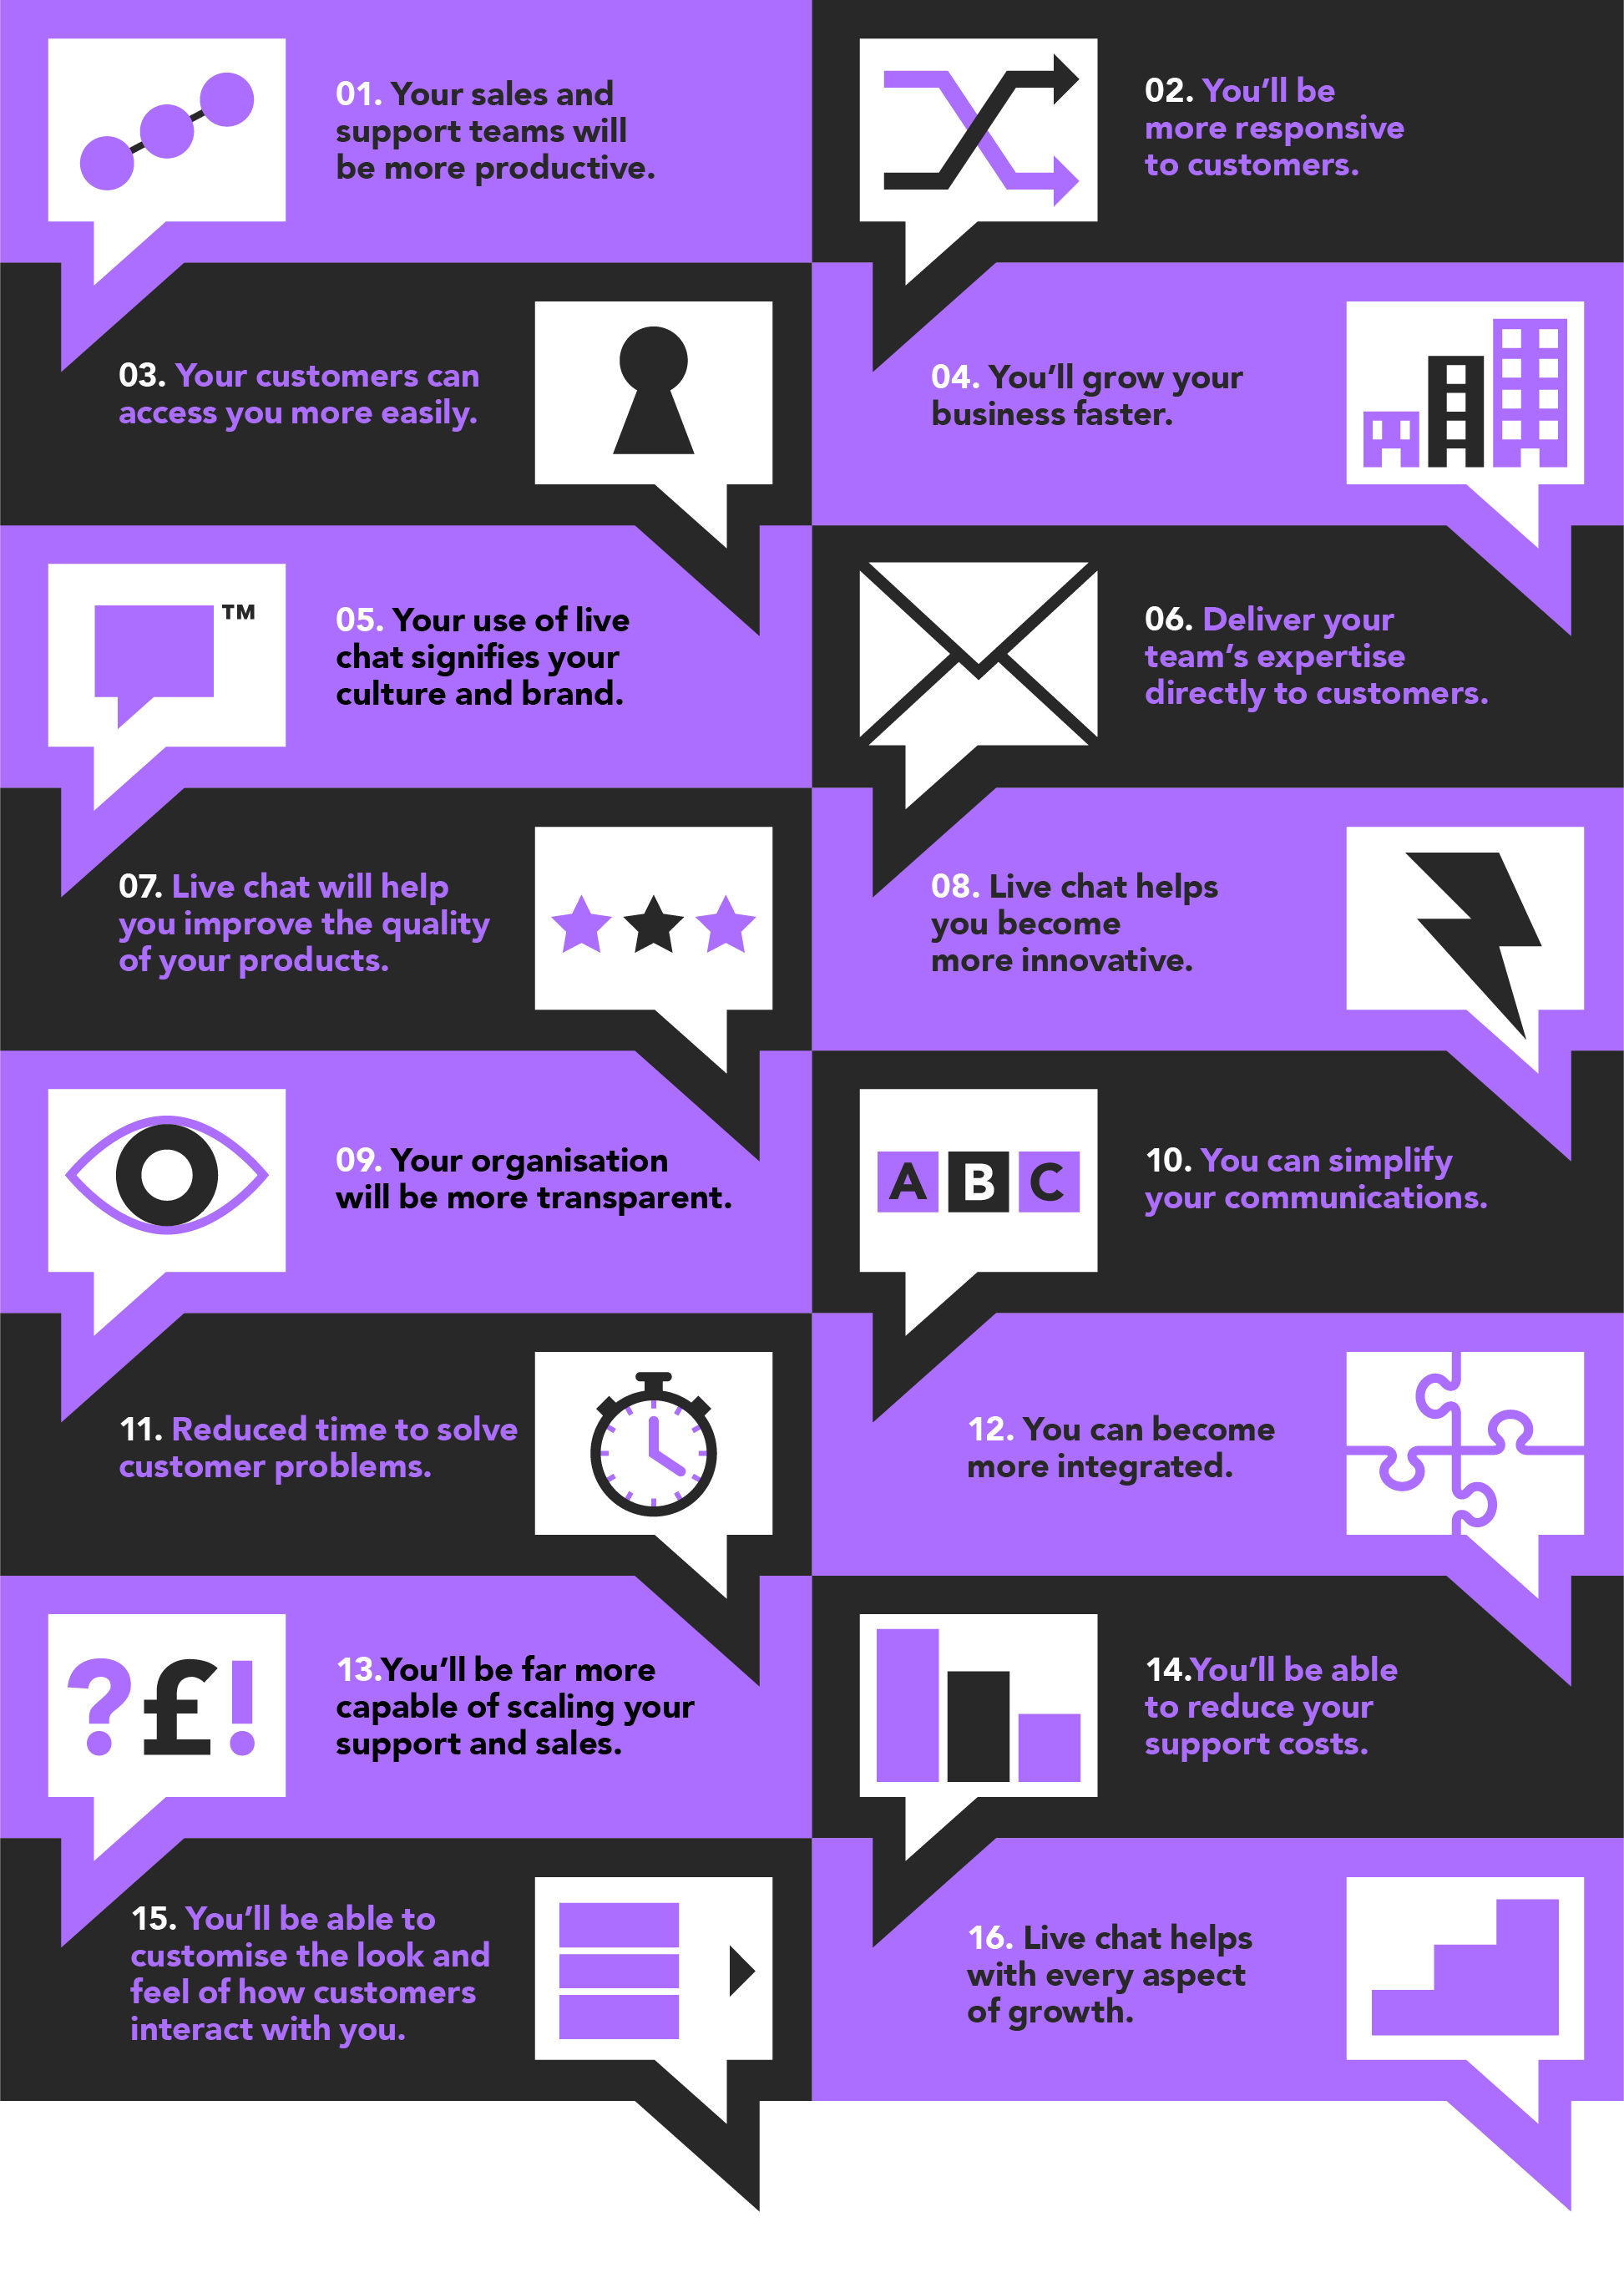 The 16 benefits of live chat